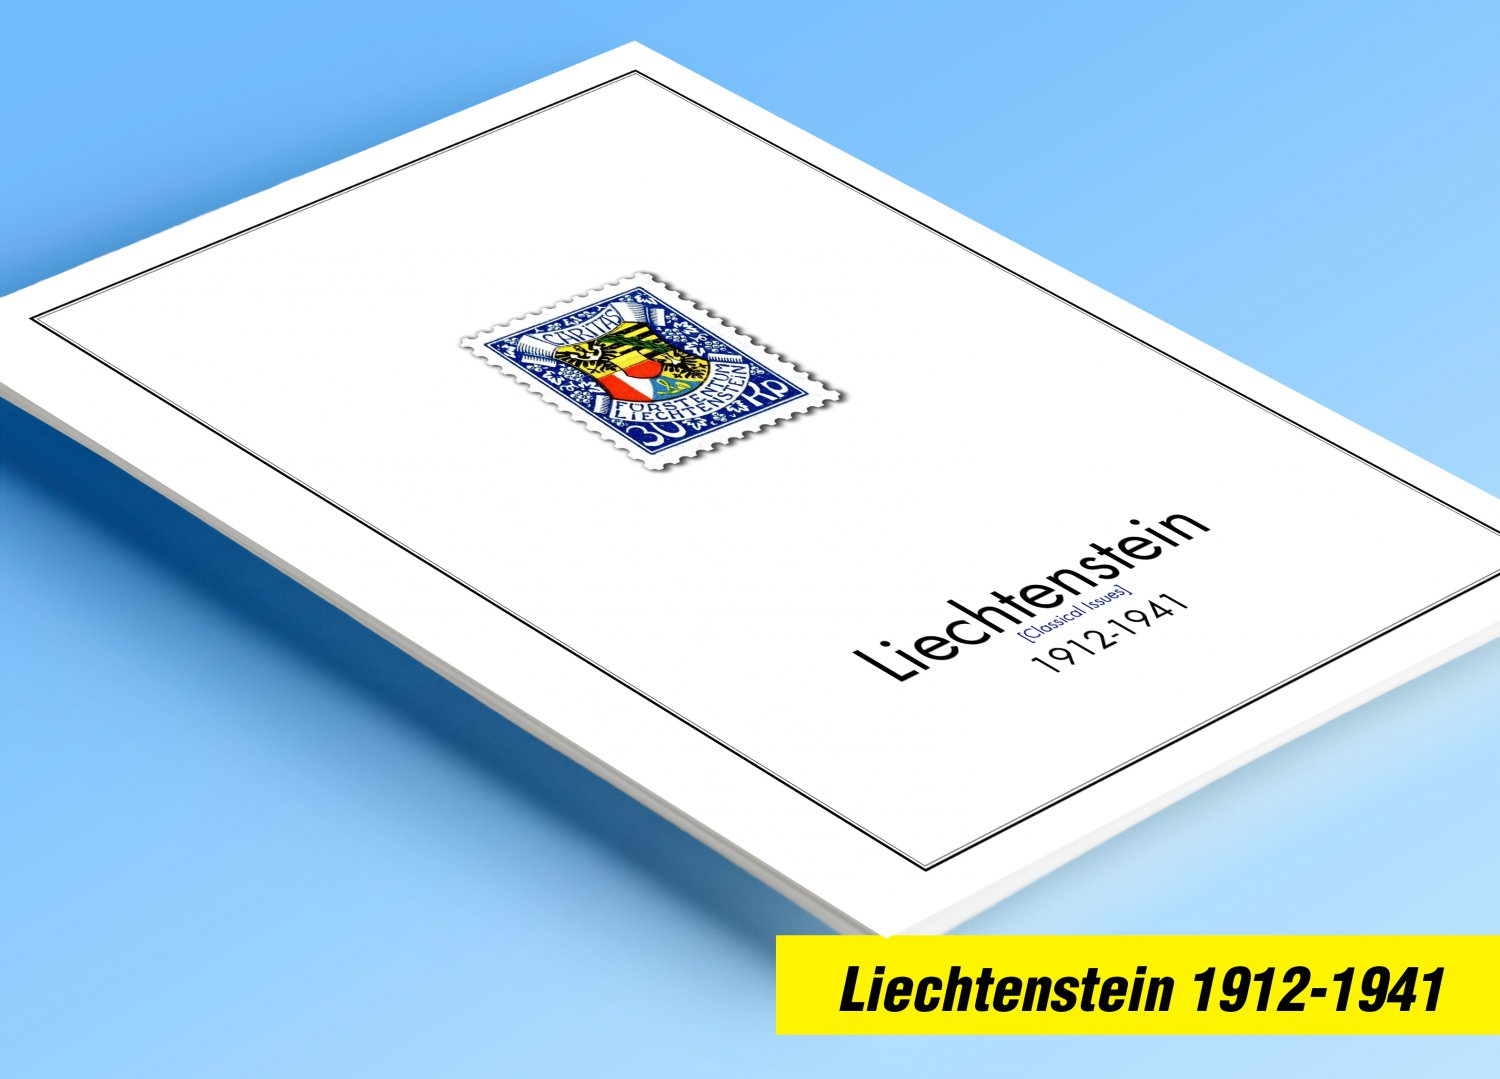 COLOR PRINTED LIECHTENSTEIN [CLASS.] 1912-1941 STAMP ALBUM PAGES (23 illustrated pages)